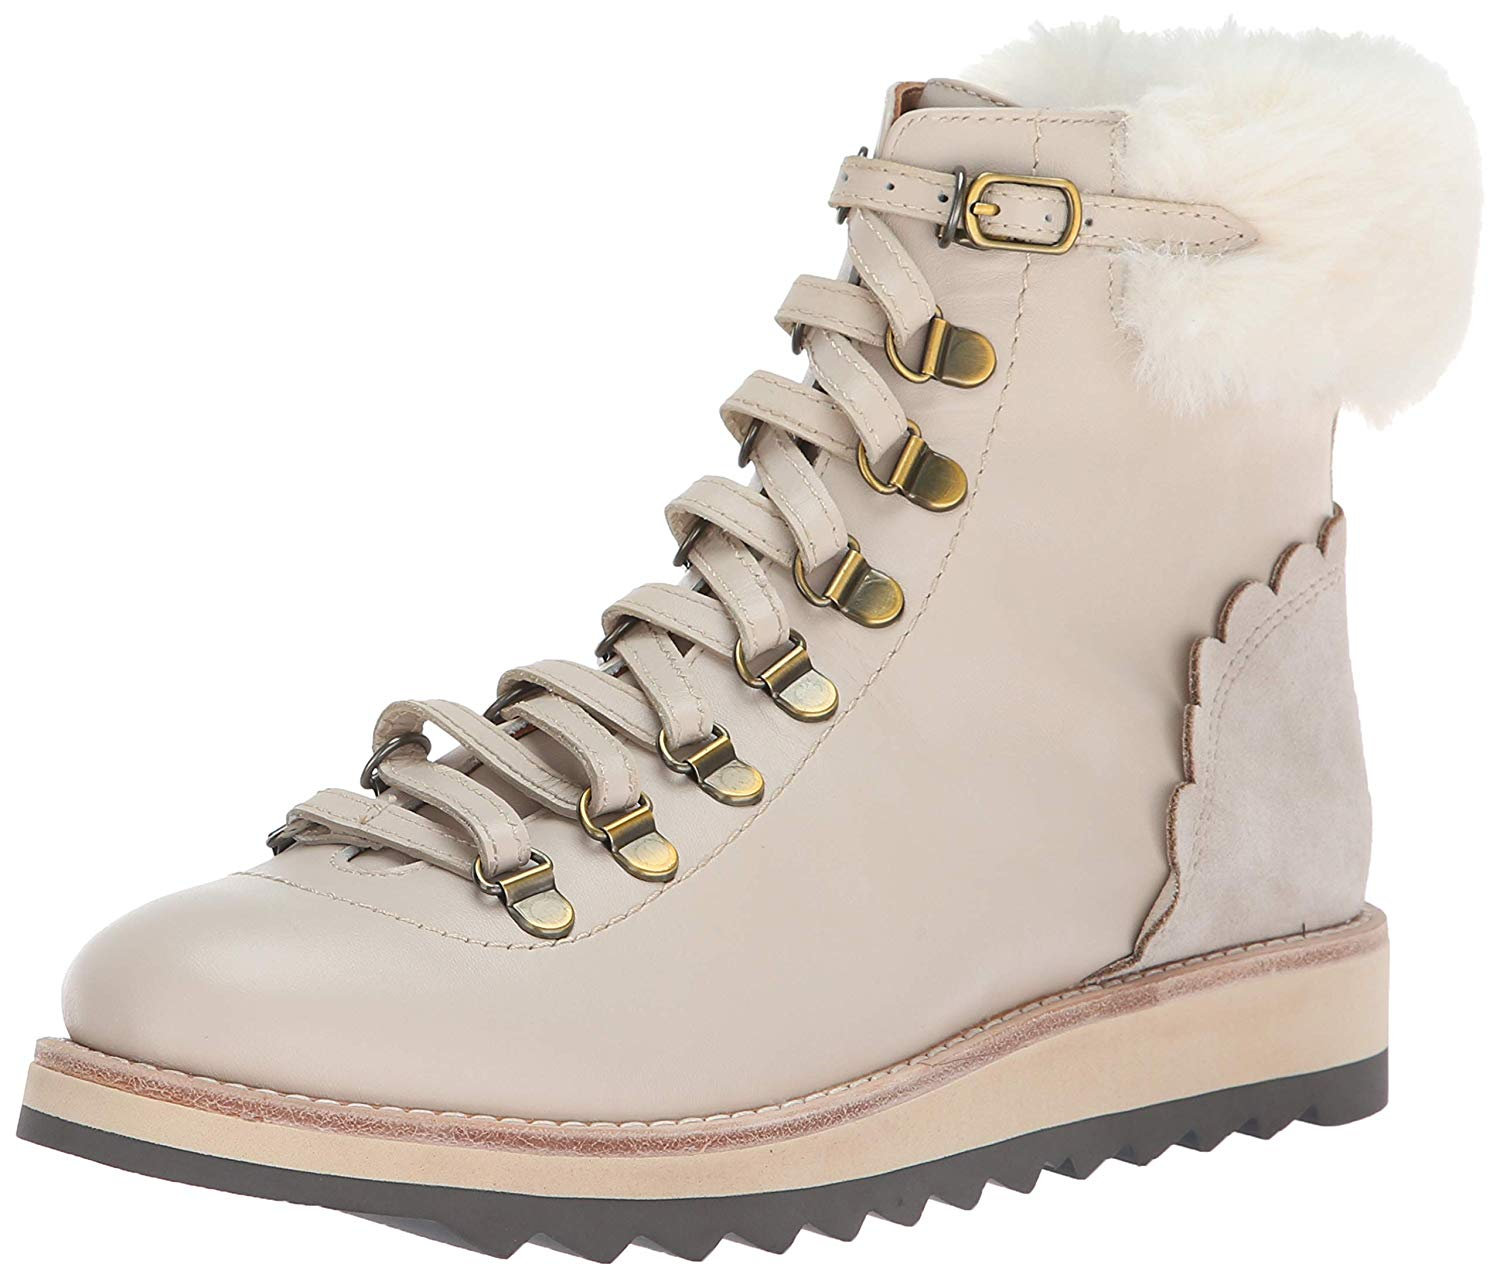 Kate Spade New York Womens Maira Hiking Boot